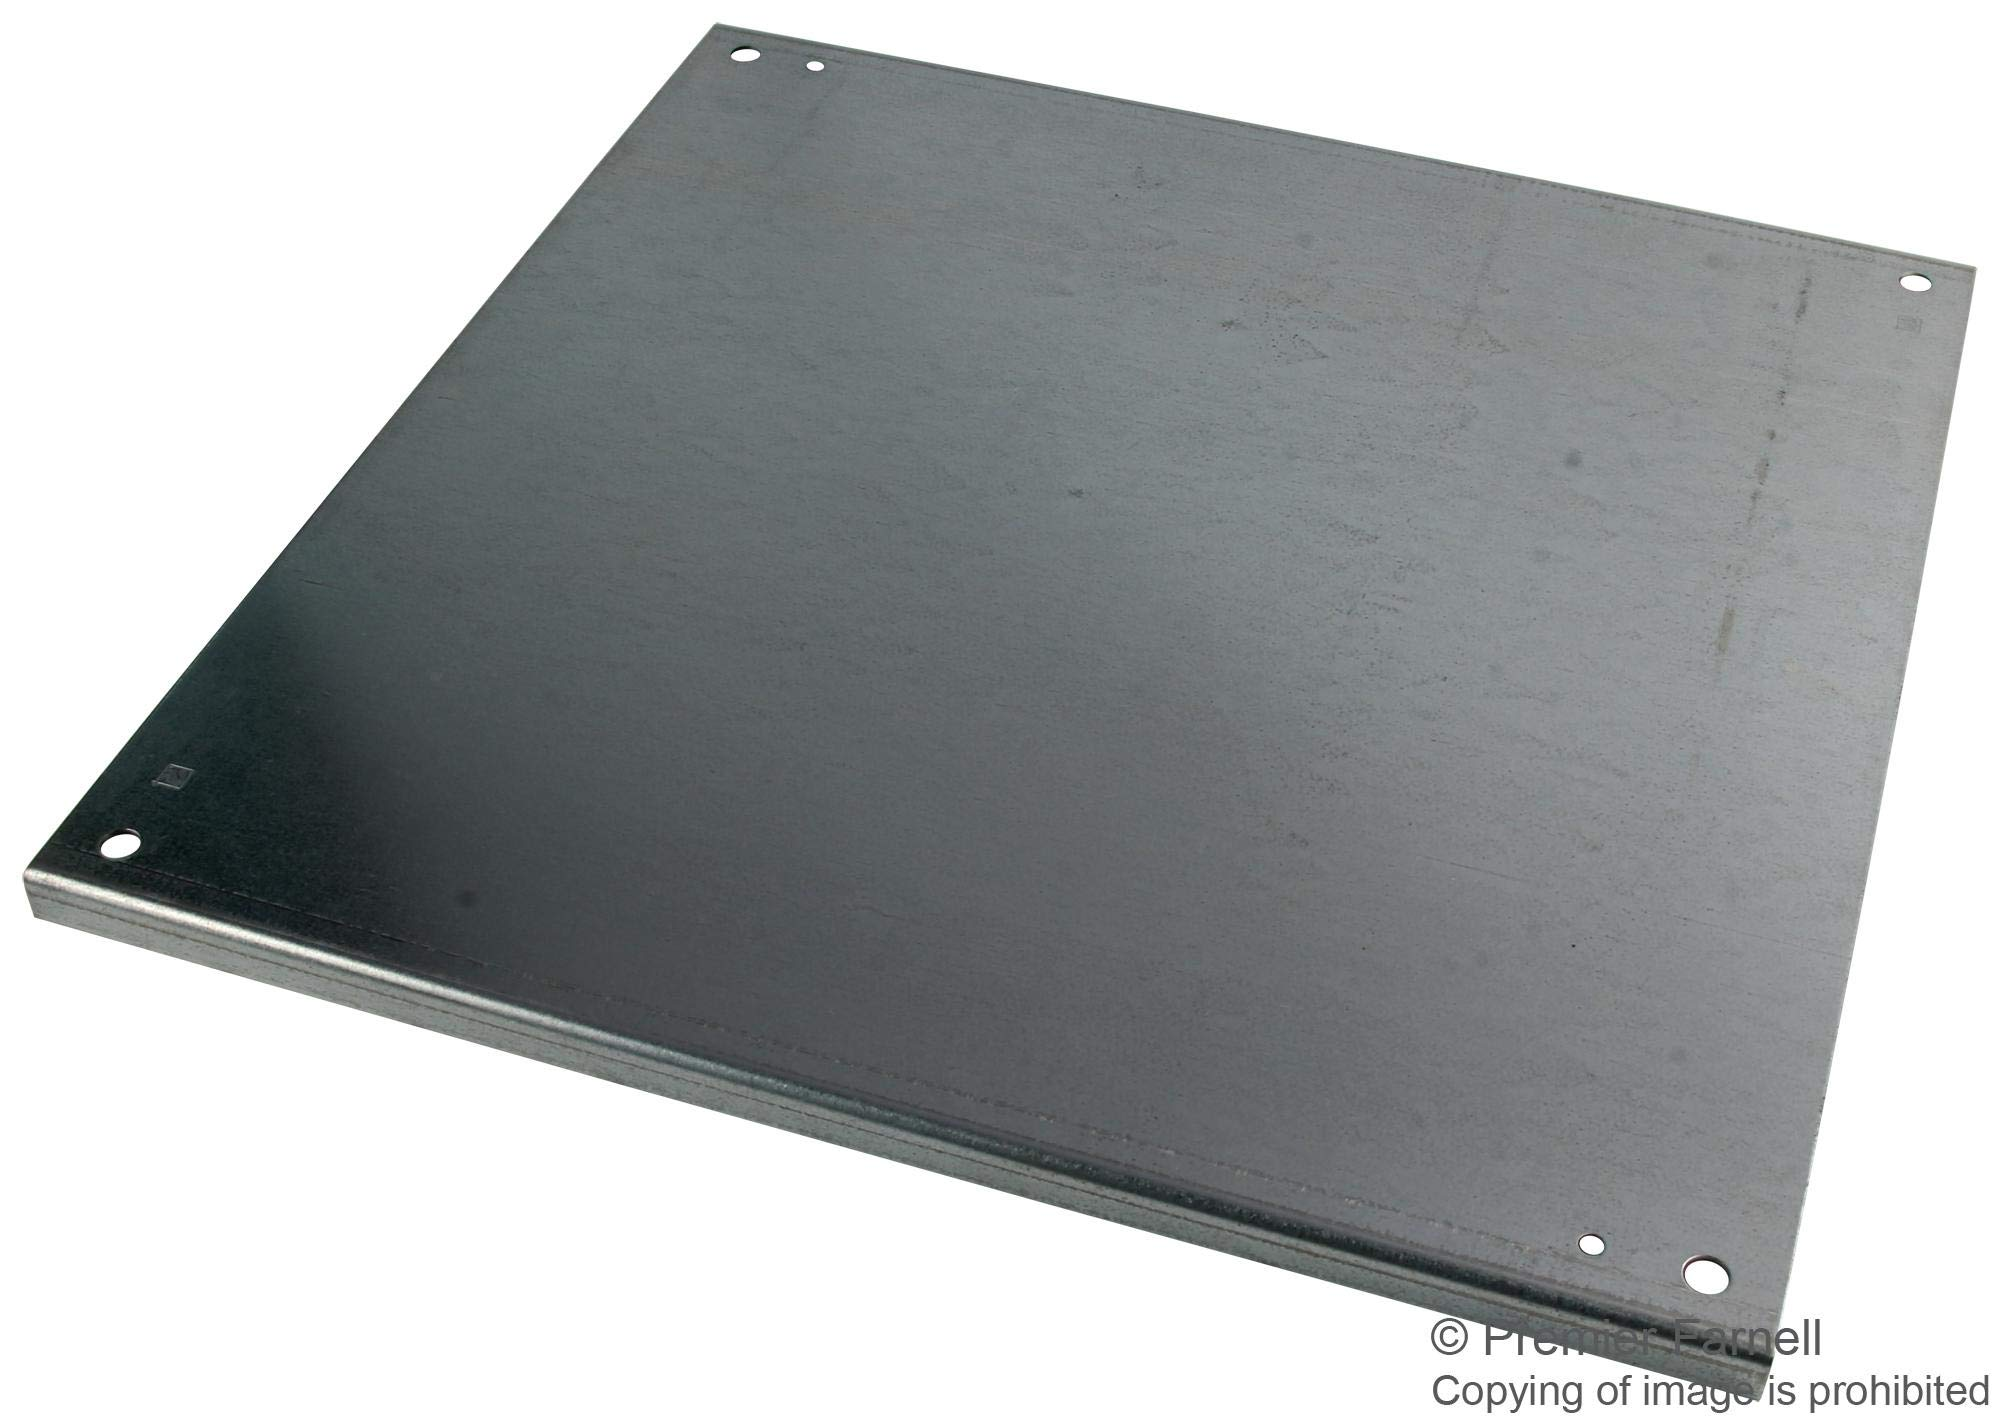 A-24P24G - Panel, Conductive, Steel, 533mm x 533mm, White (A-24P24G)